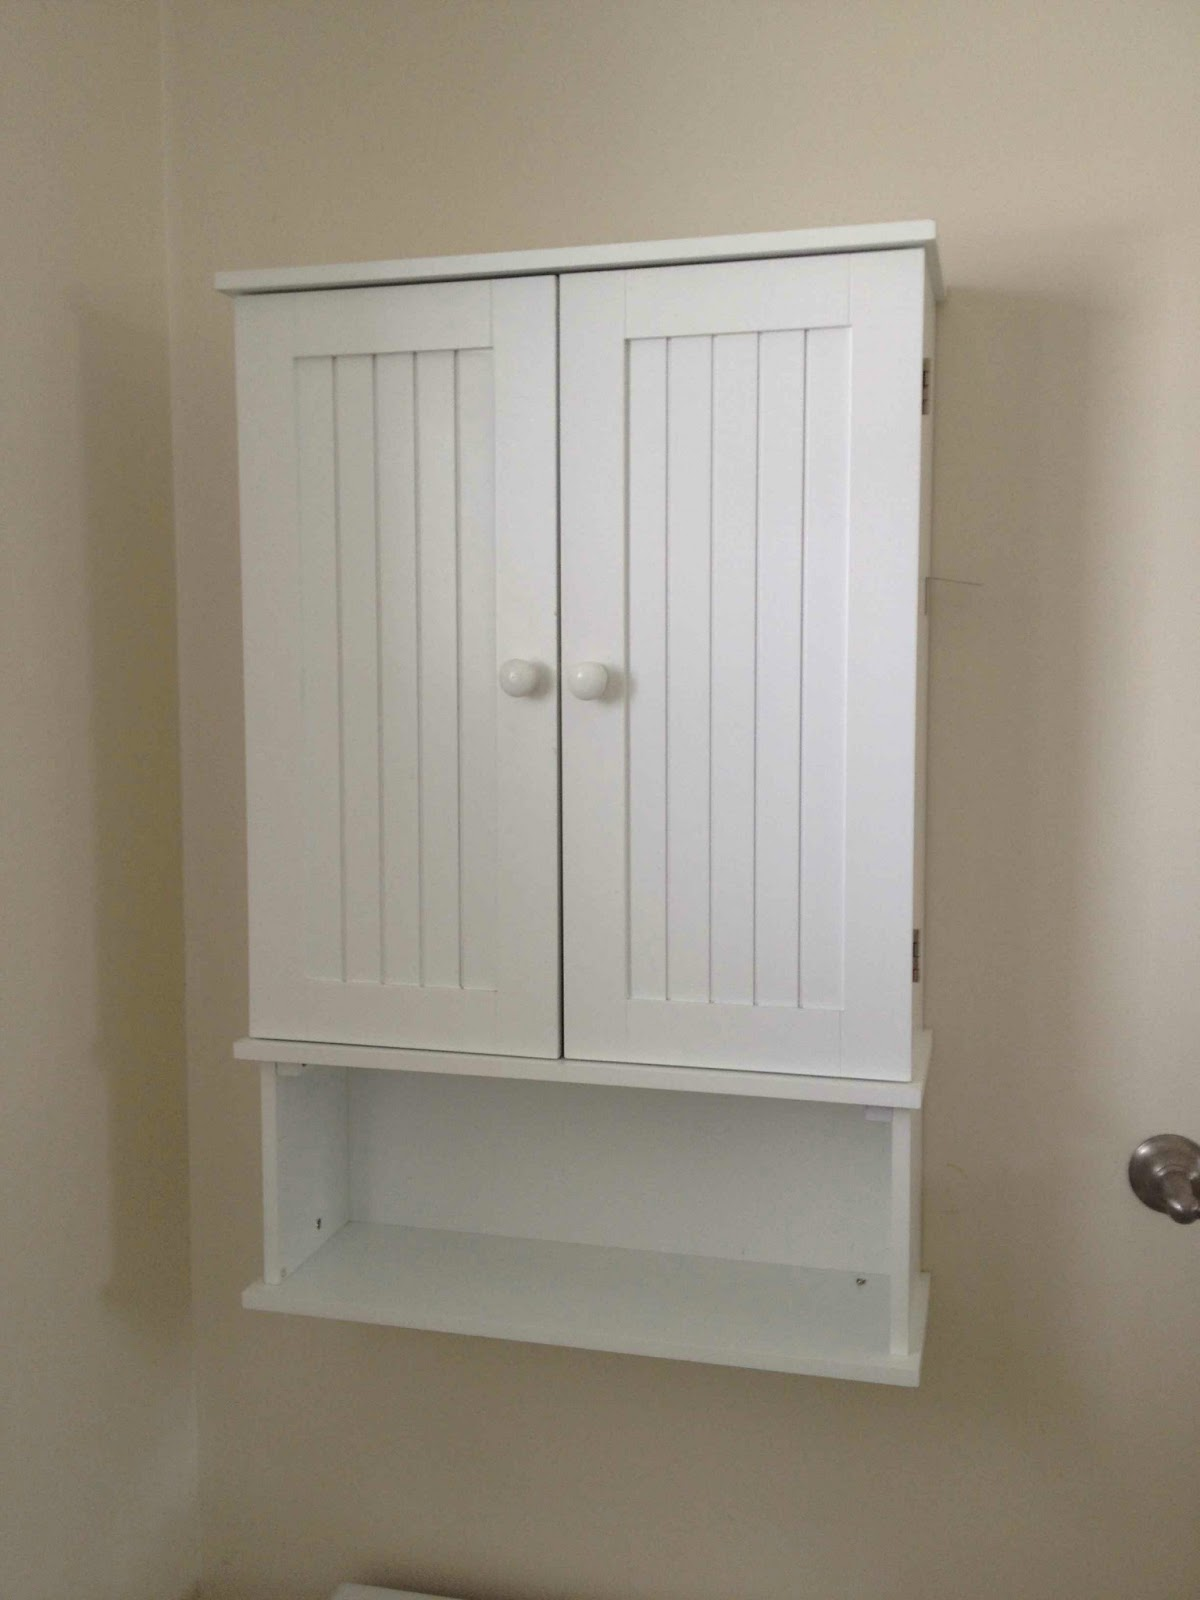 Bathroom linen cabinets white